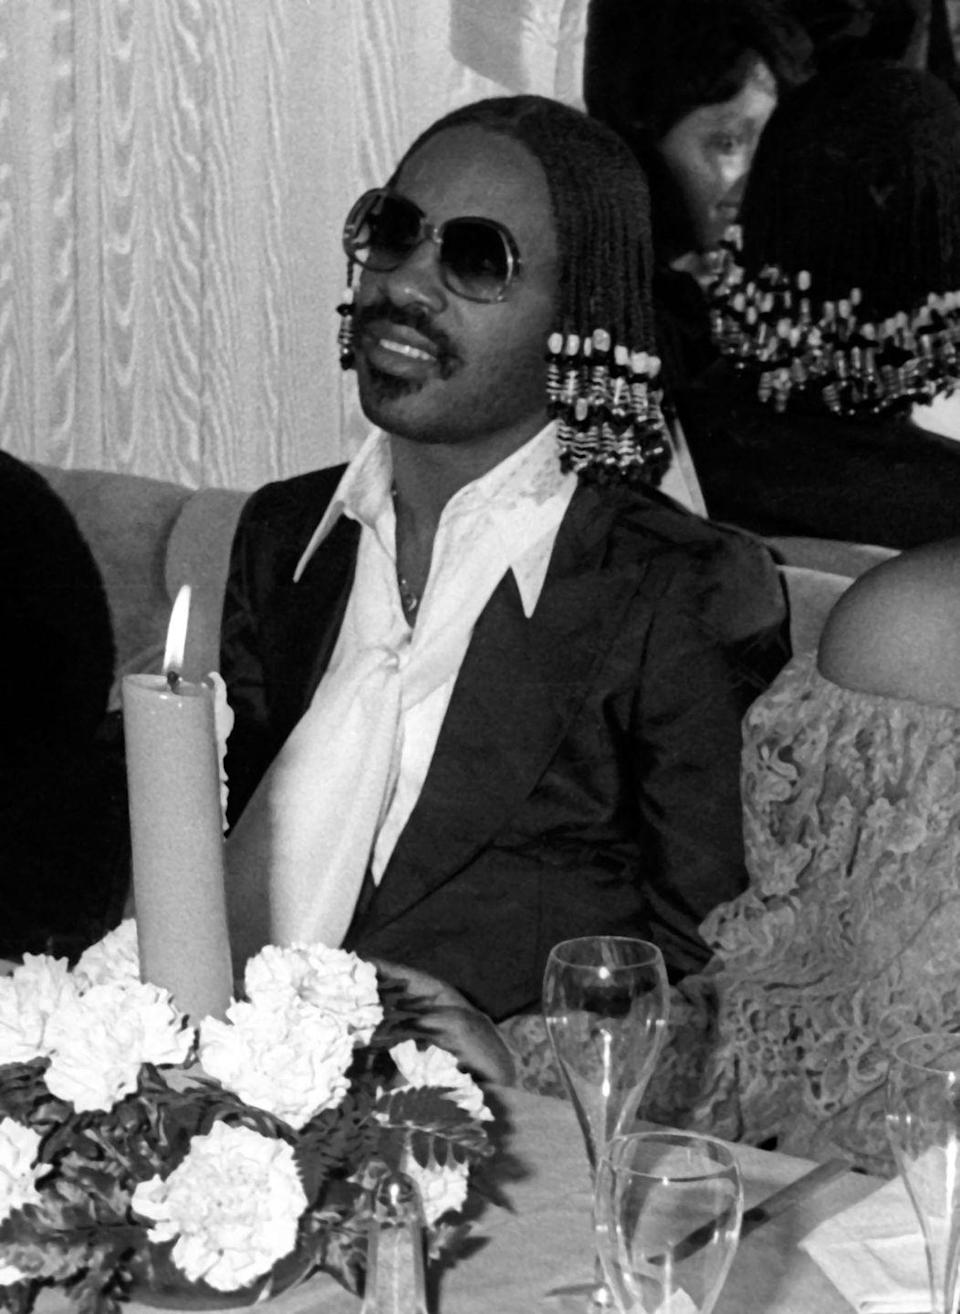 <p>Stevie Wonder attends New Year's Eve Party on December 31, 1977 at Giorgio's Restaurant in New York City.</p>